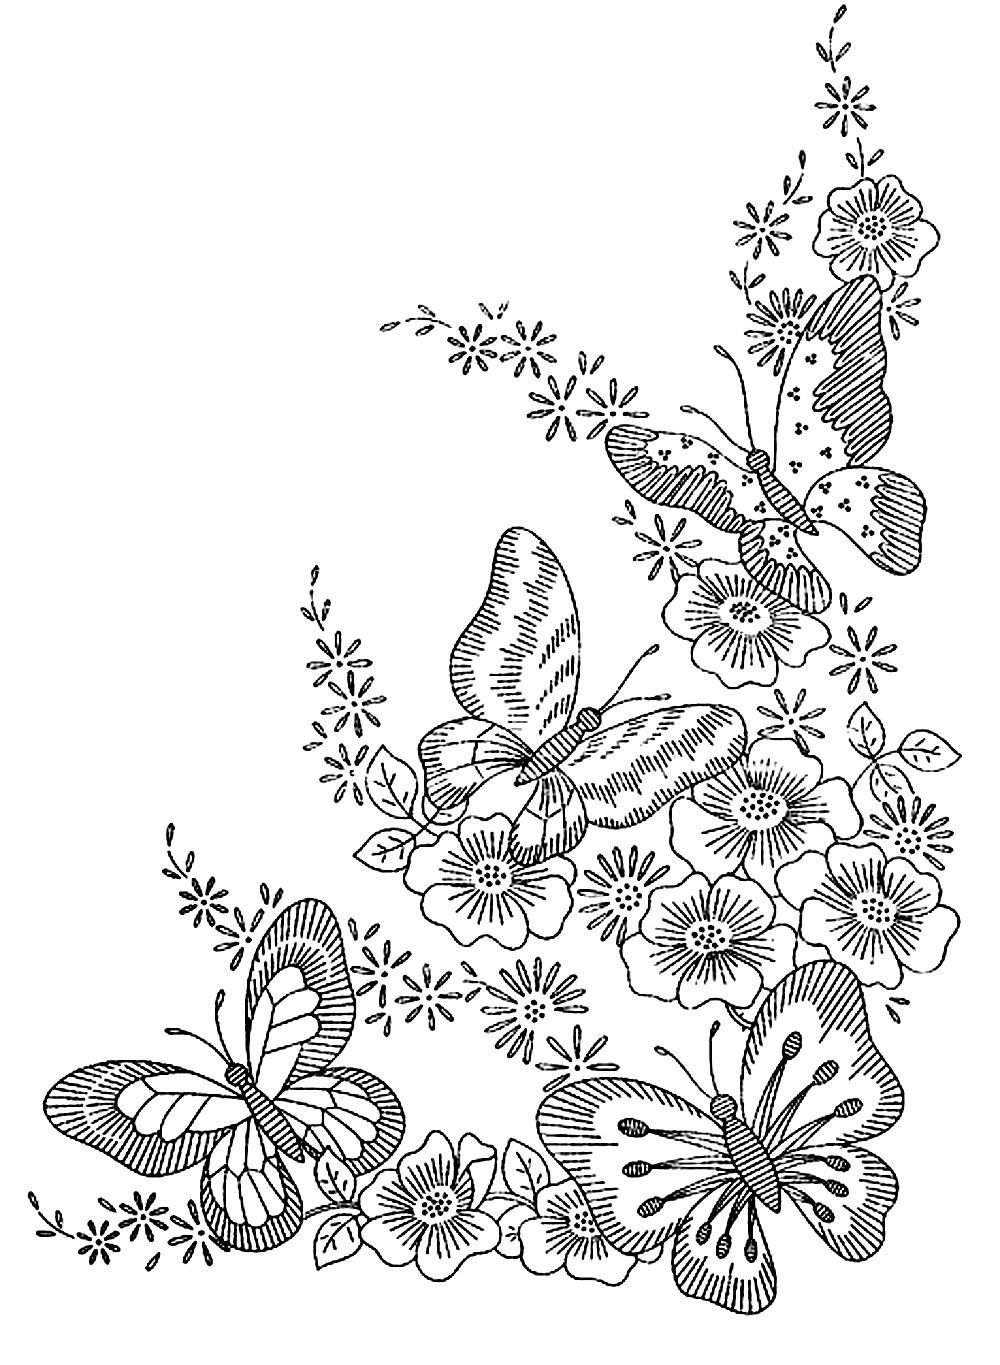 To Print This Free Colouring Page Adult Difficult Butterflies